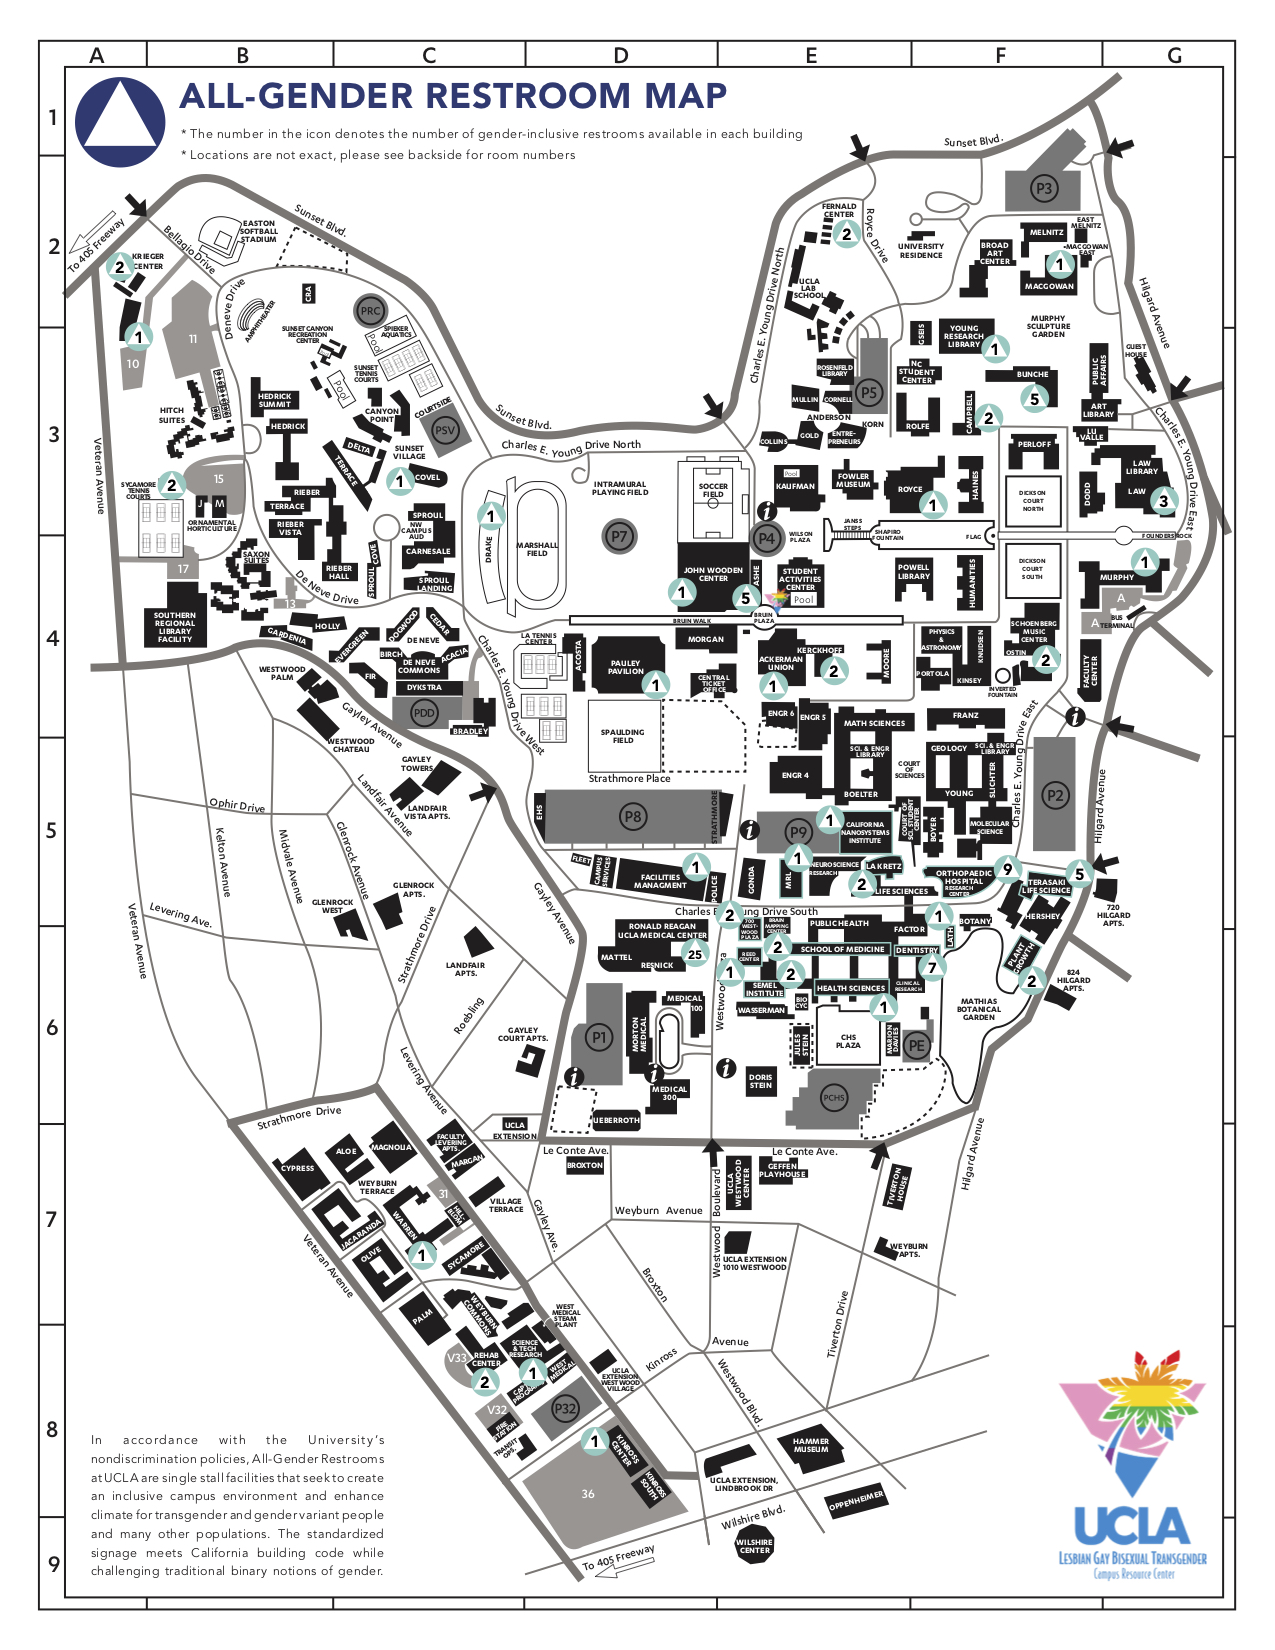 Accessibility and Inclusion – UCLA QGrad: Graduate ... on ucla pauley pavilion map, ucla hall of fame, ucla anderson map, ucla housing, ucla street address, ucla parking map, ucla james west alumni center, ucla parking structure 3, ucla kerckhoff, ucla map and area, ucla boelter hall, ucla parking information, ucla adress, ucla la kretz hall, ucla directions, ucla interactive map, ucla lecture-hall, ucla medicine, ucla westwood map,